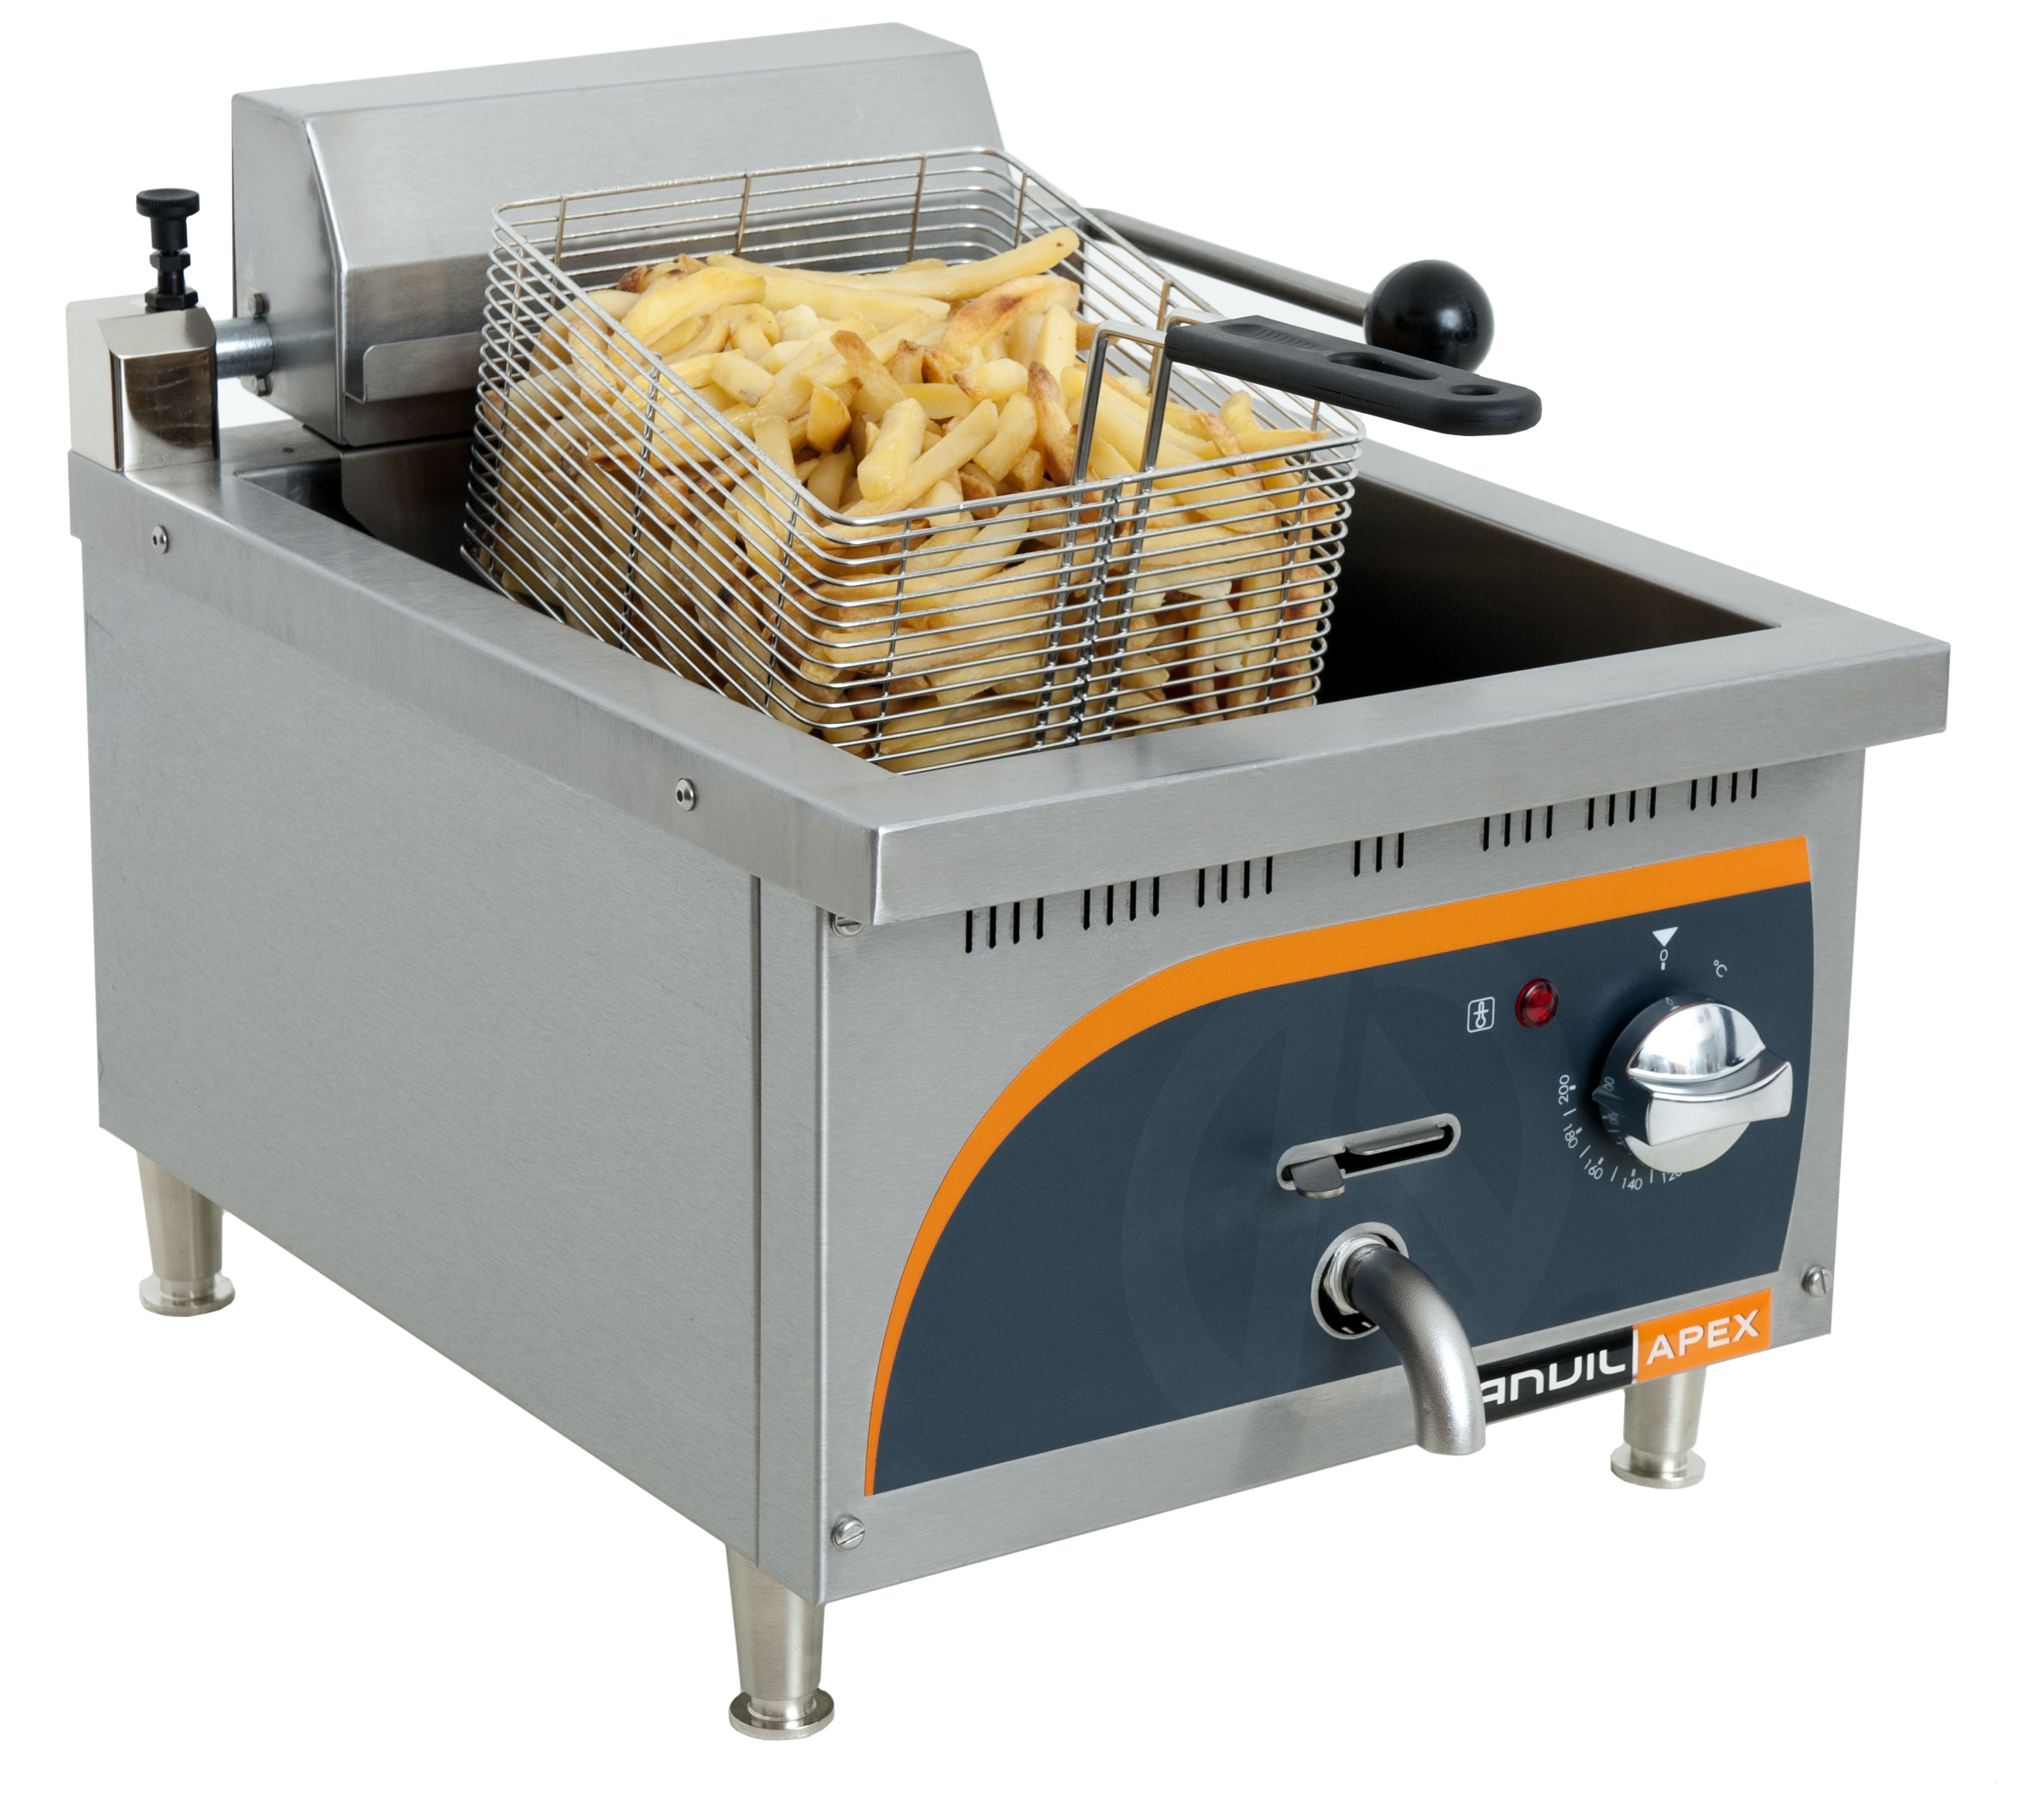 ffa6003--fish-fryer-anvil--1-x-10lt--high-speed--56kw-elec